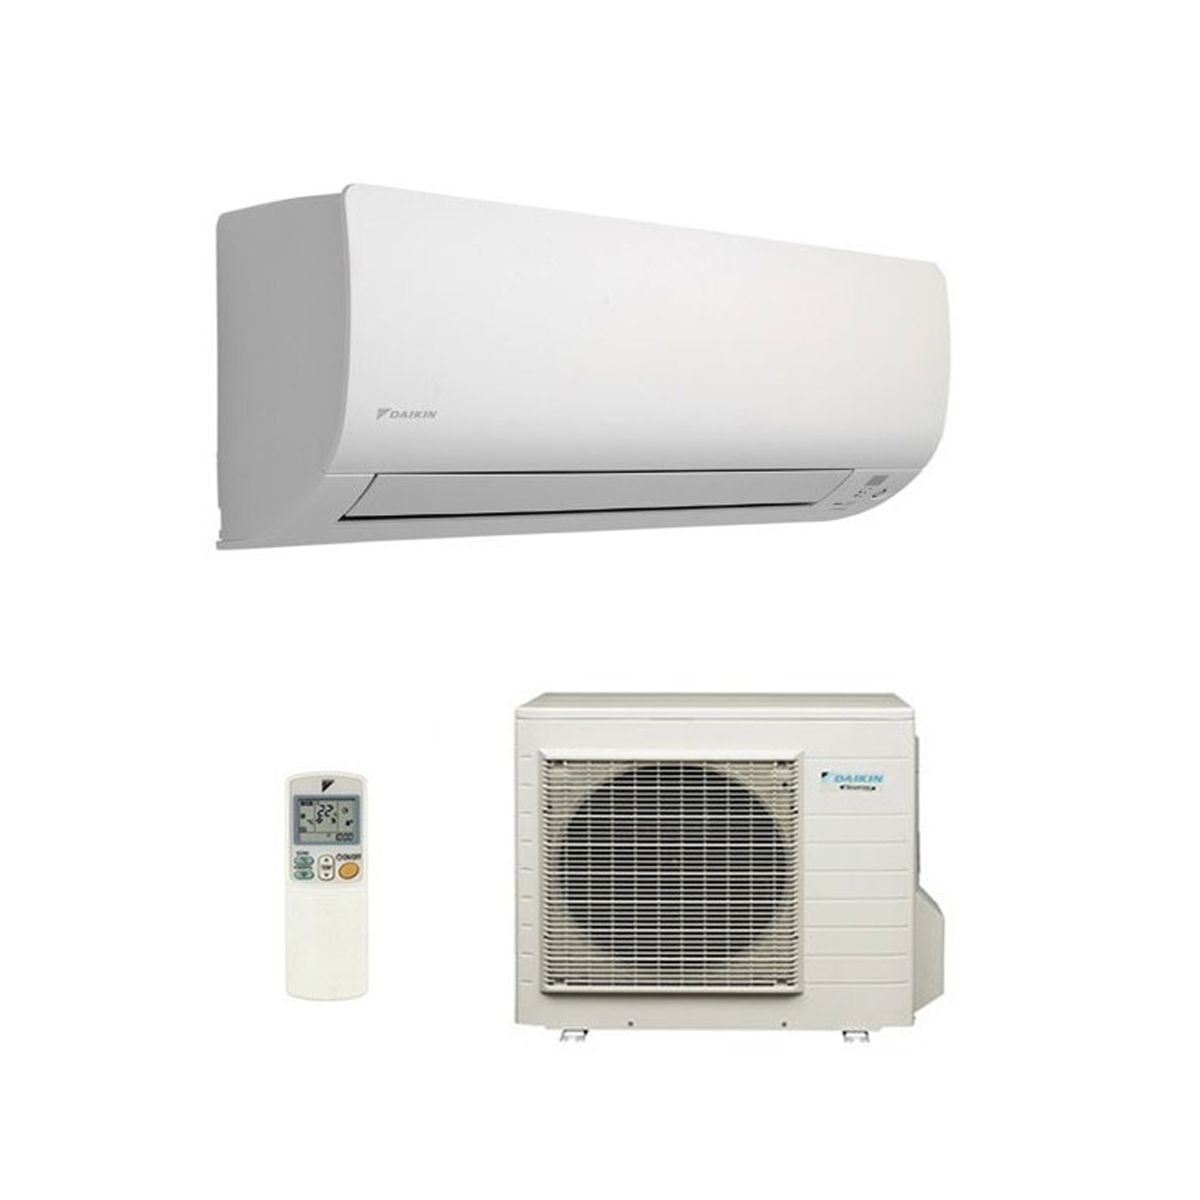 Daikin air conditioning ftxs35k wall mounted 35kw 12000 btu daikin air conditioning ftxs35k wall mounted 35kw 12000 btu inverter heat pump a 240v50hz fandeluxe Choice Image